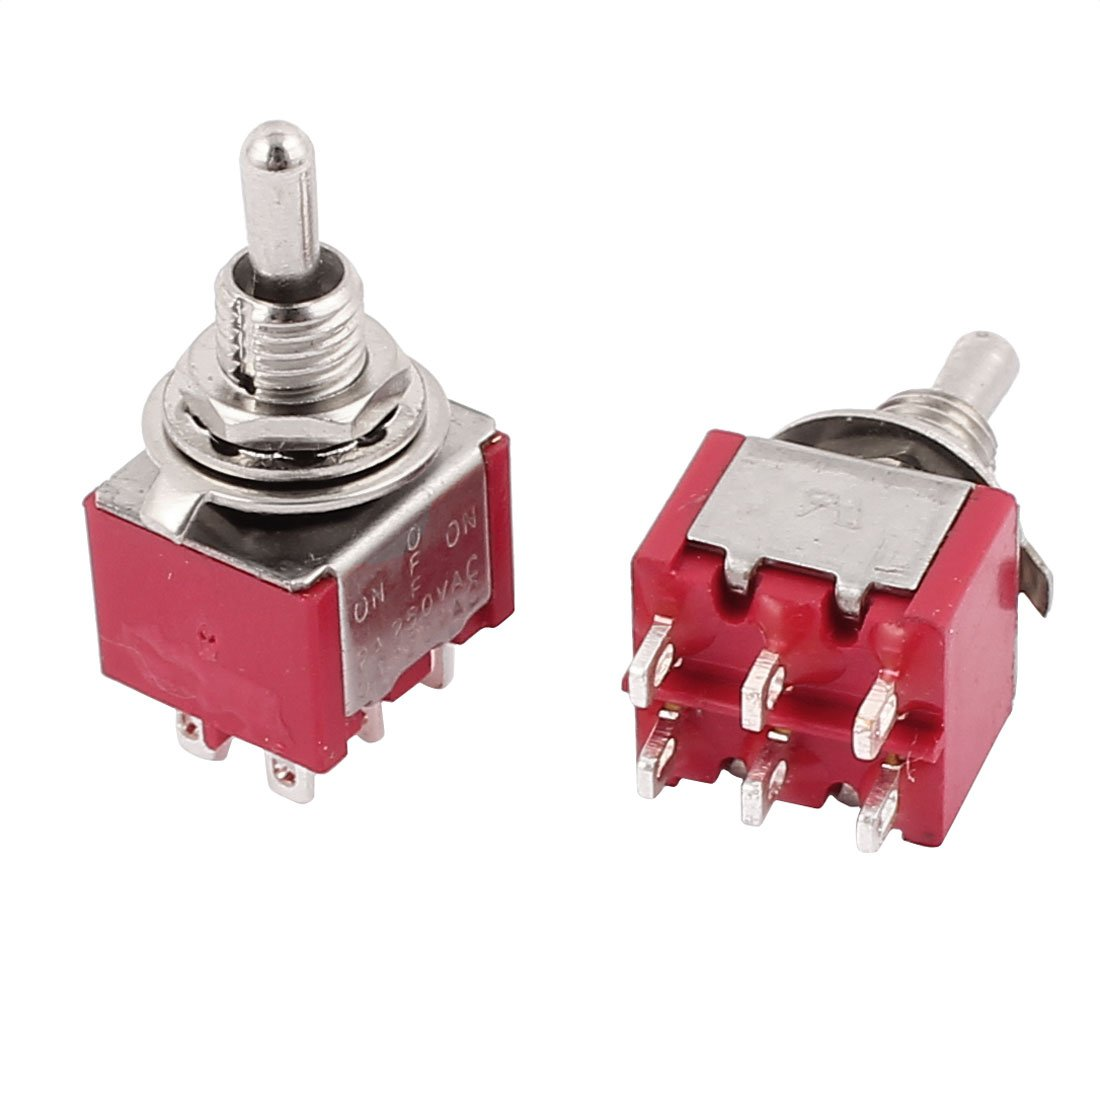 On-Off-On Miniature Toggle Switch 5A DPDT